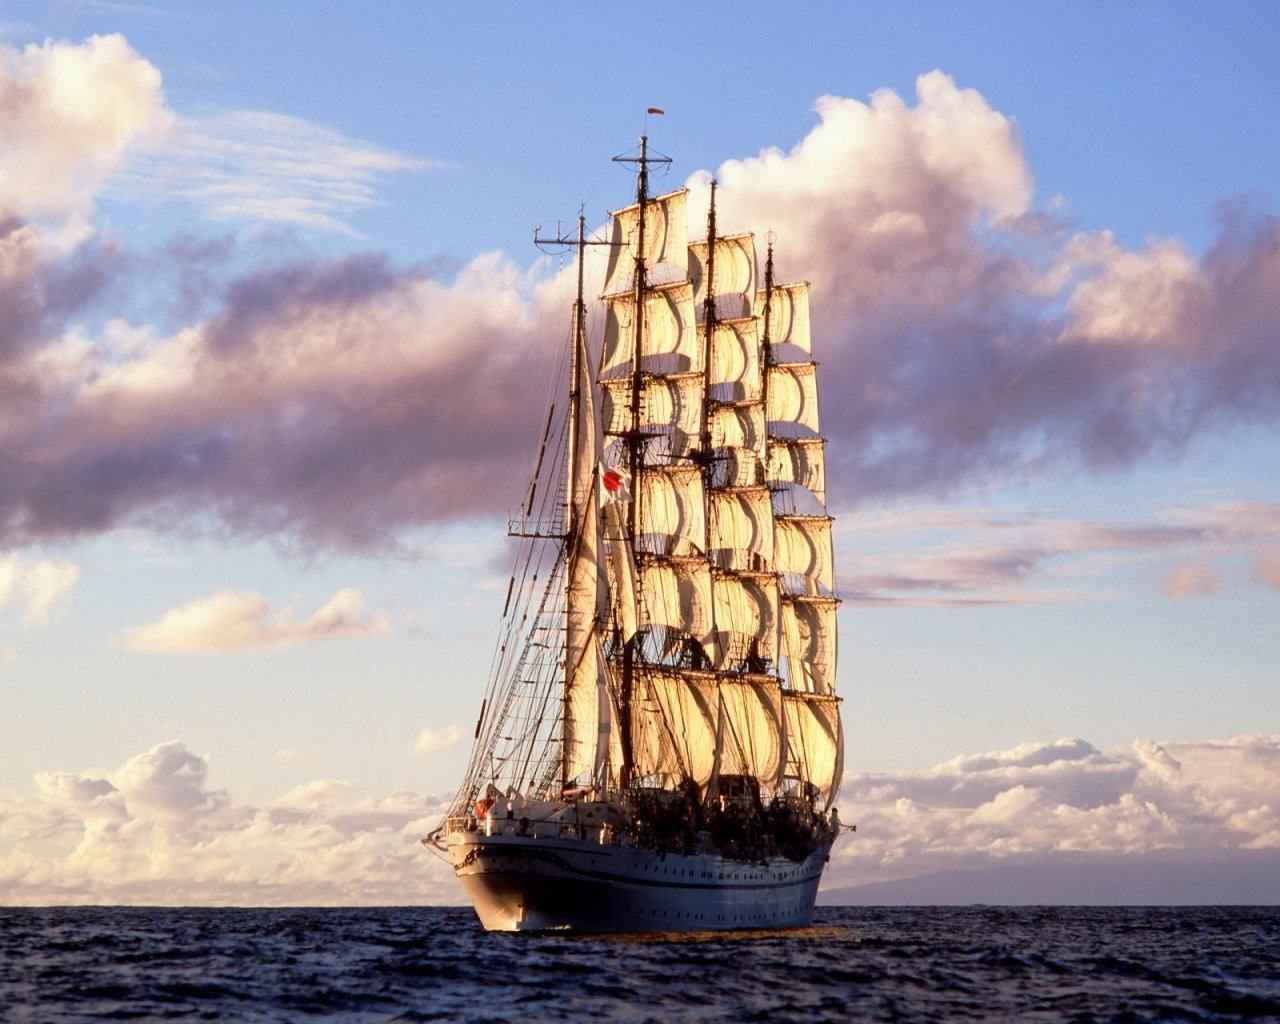 Great Voyage HD Wallpaper | Slwallpapers